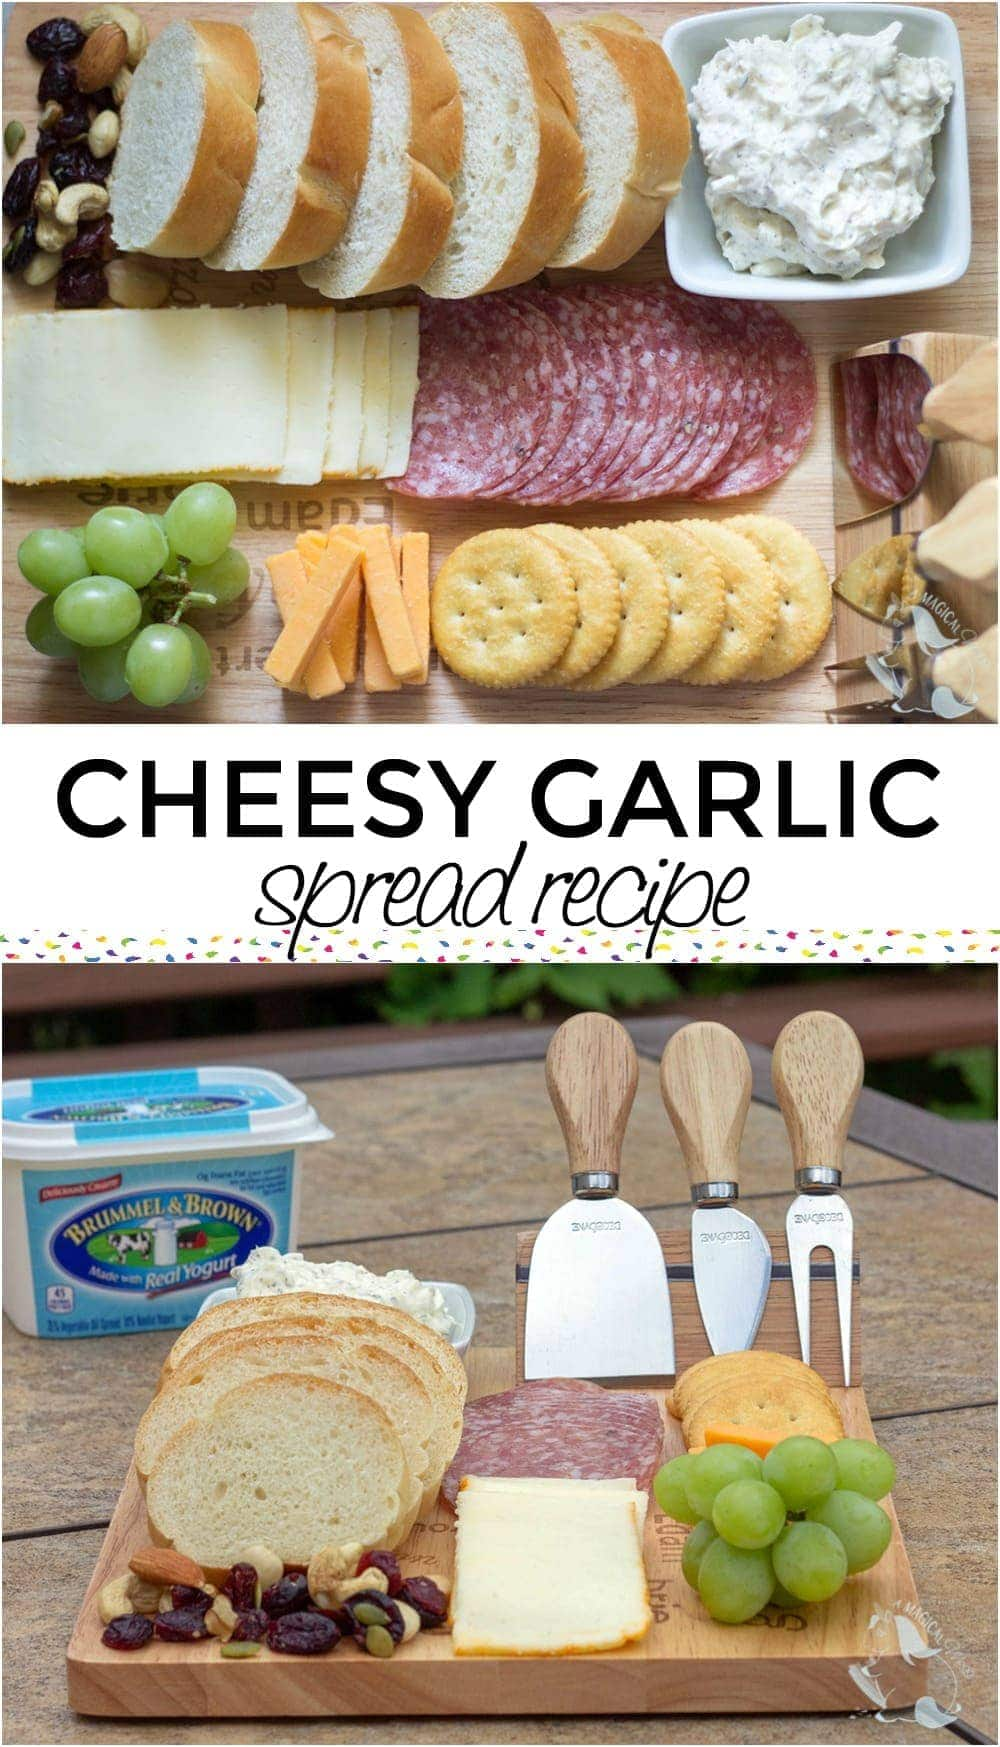 Cheesy garlic butter spread recipe